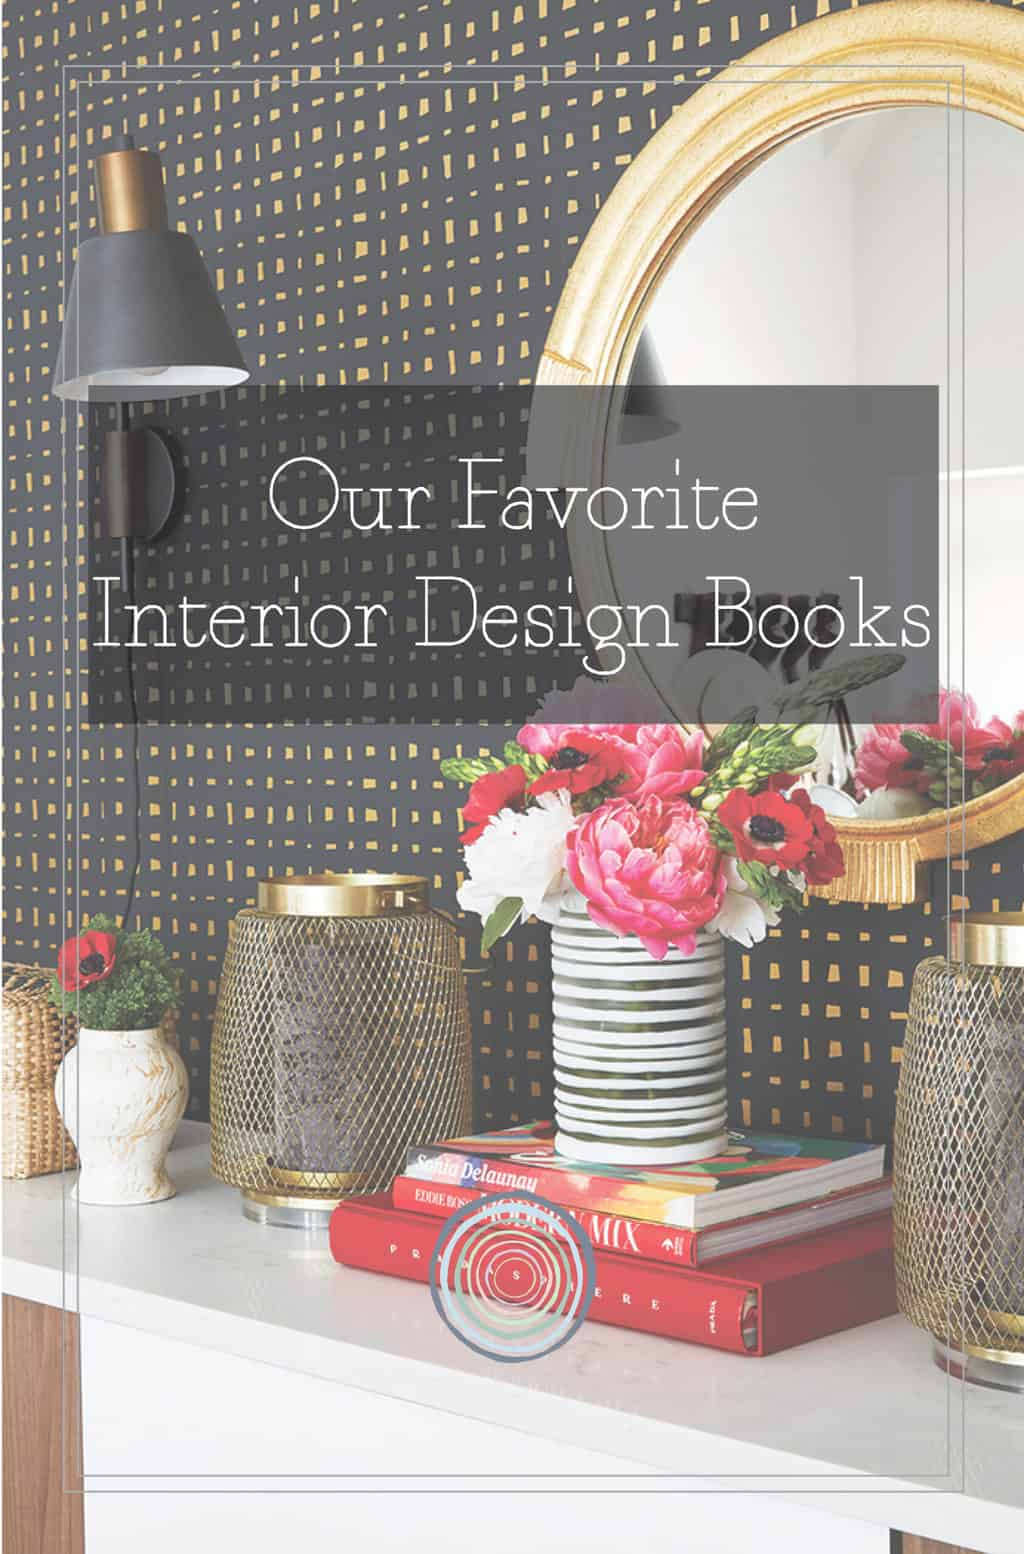 Our Favorite Interior Design Books